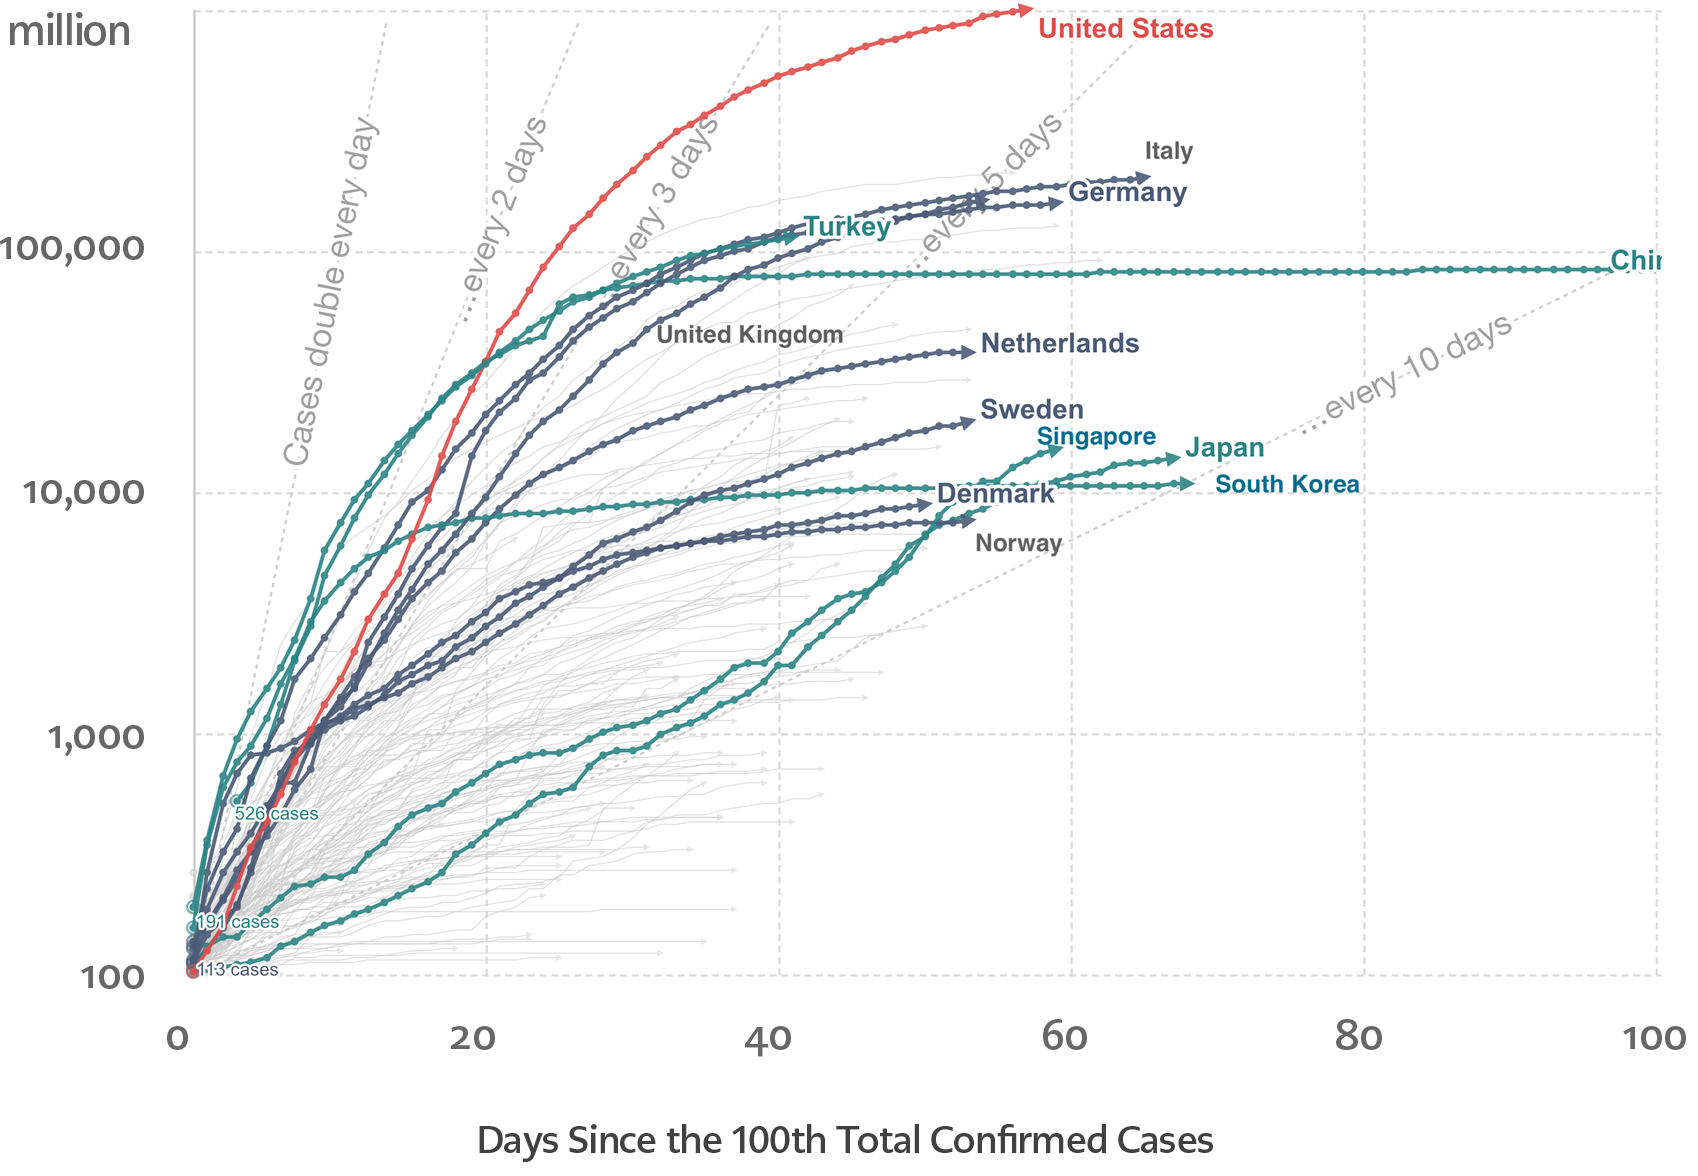 <strong>Figure 2.</strong> Total number of COVID-19 cases since the 100th confirmed case as of April 28th, 2020 (Source: Our World in Data - https://ourworldindata.org/)